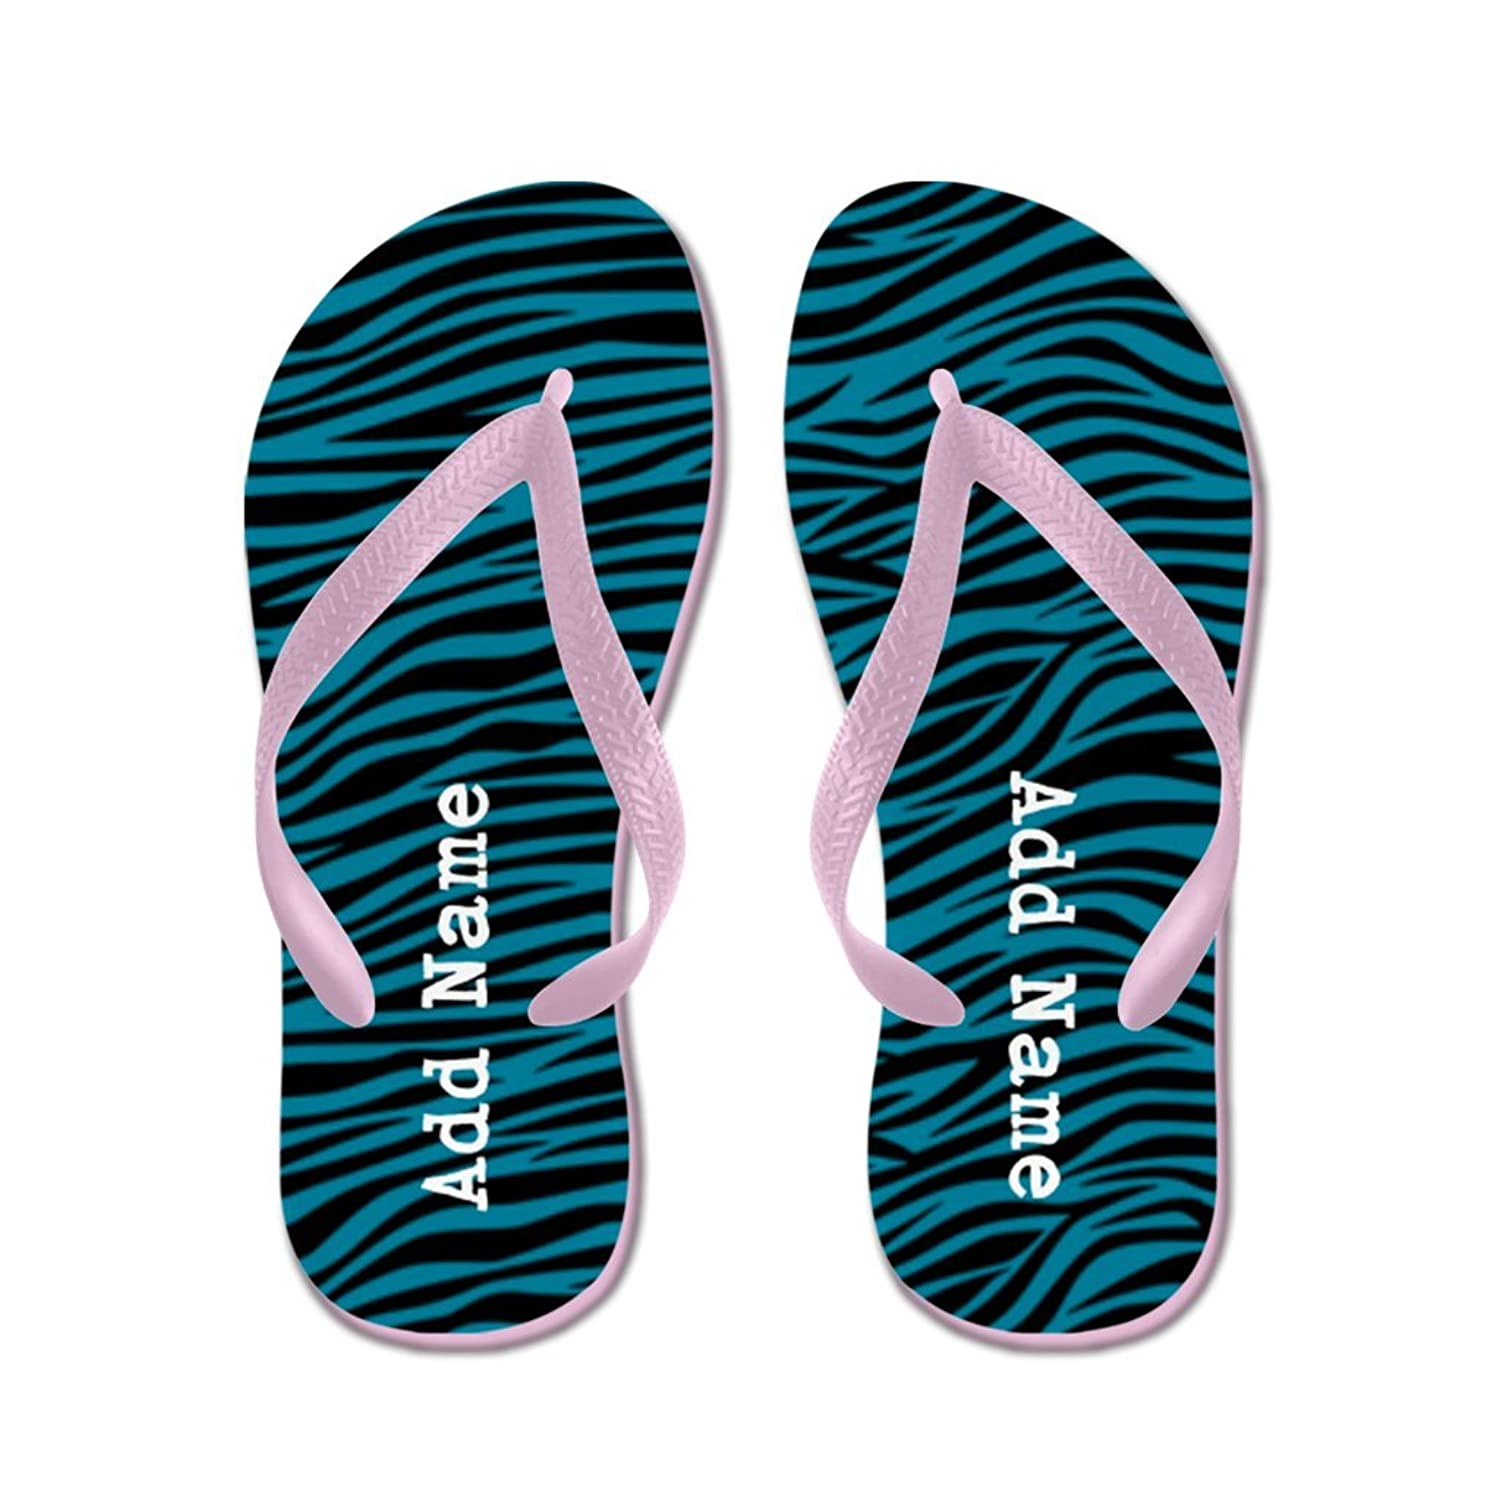 873b26e14cad57 Lplpol Personalizable Customized Zebra Stripes Teal Flip Flops for Kids and  Adult Unisex Beach Sandals Pool